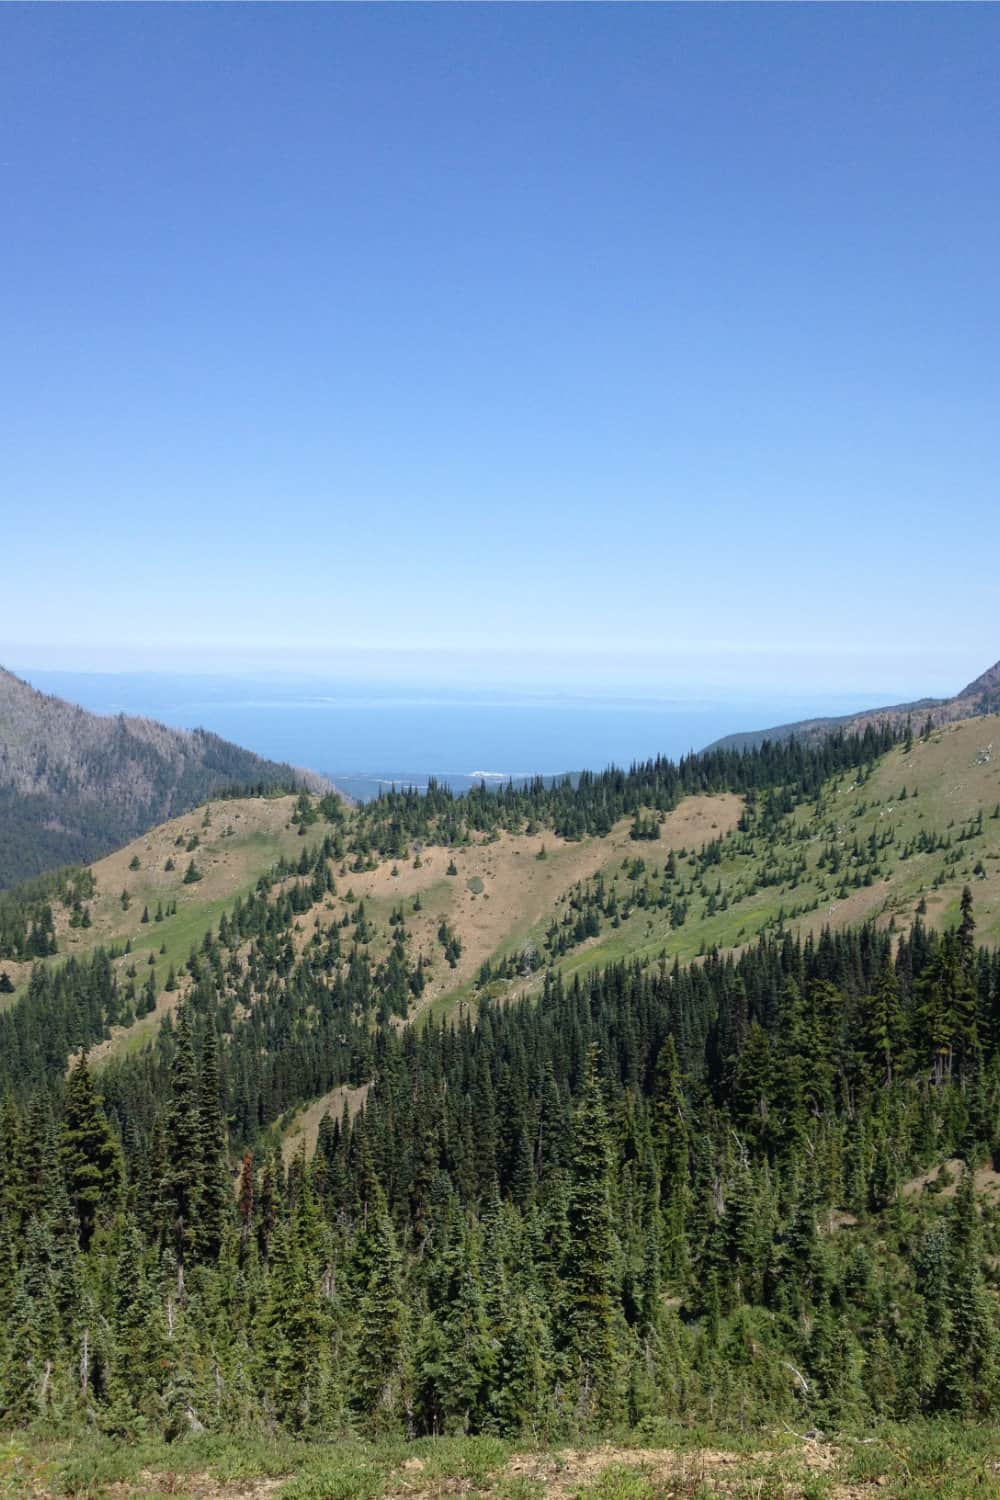 Hurricane Ridge Strait of Juan de Fuca